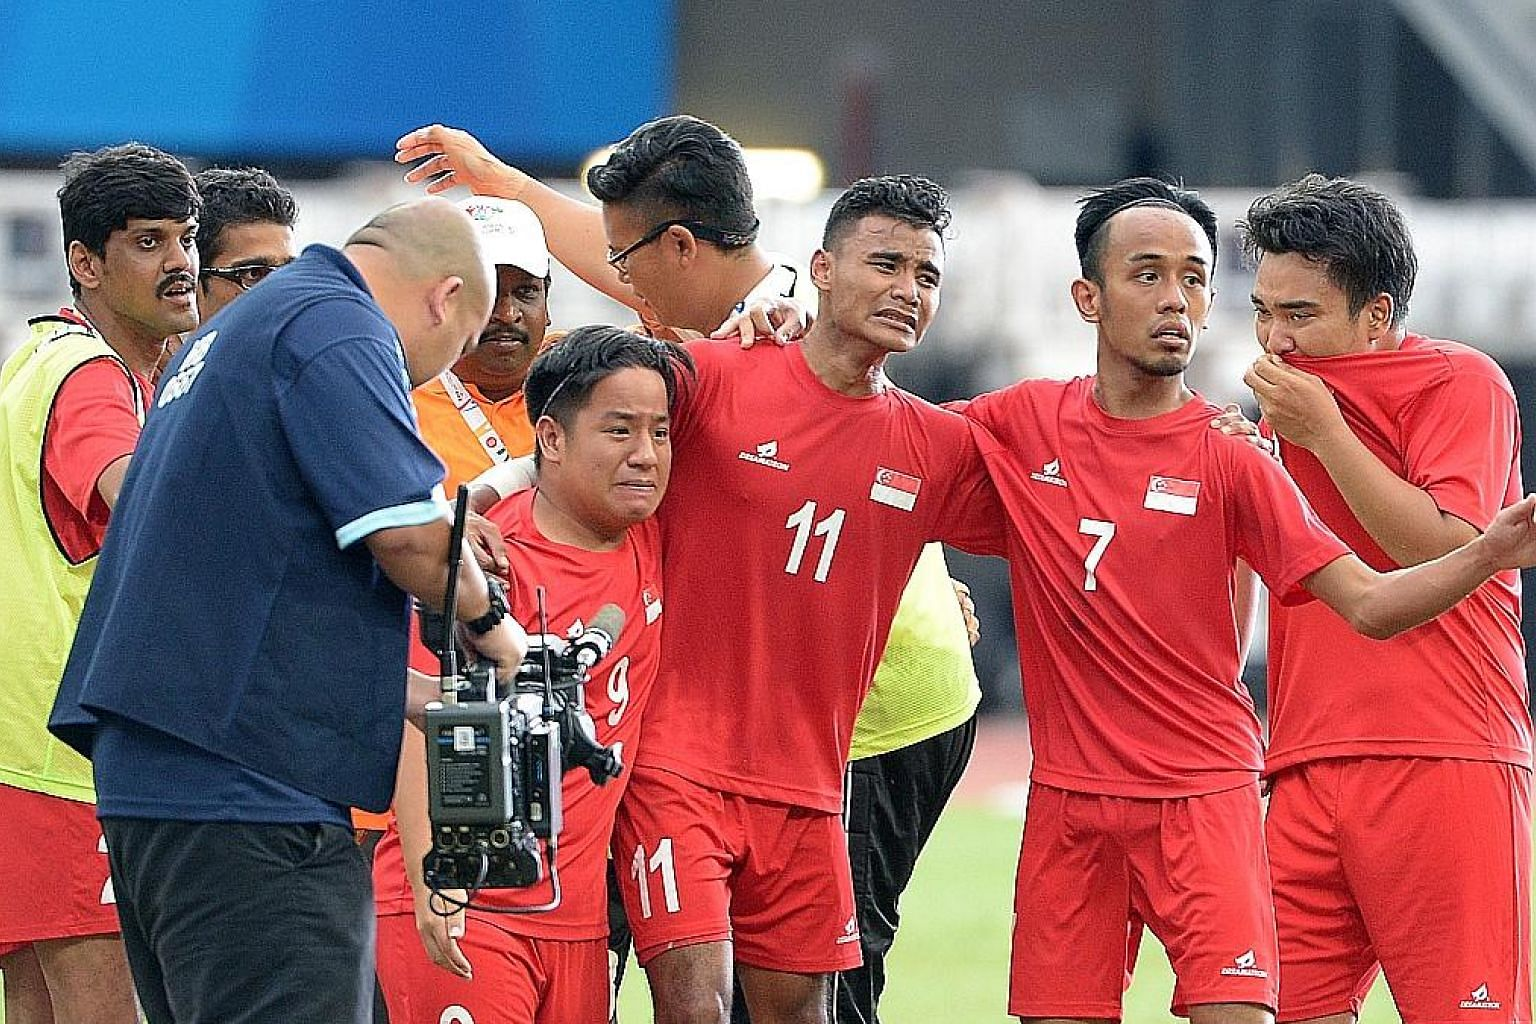 An emotional Muhammad Mubarak (No. 11), who scored the winner, celebrating with members of the Singapore celebral palsy football team after beating Malaysia 2-1 to win the bronze.